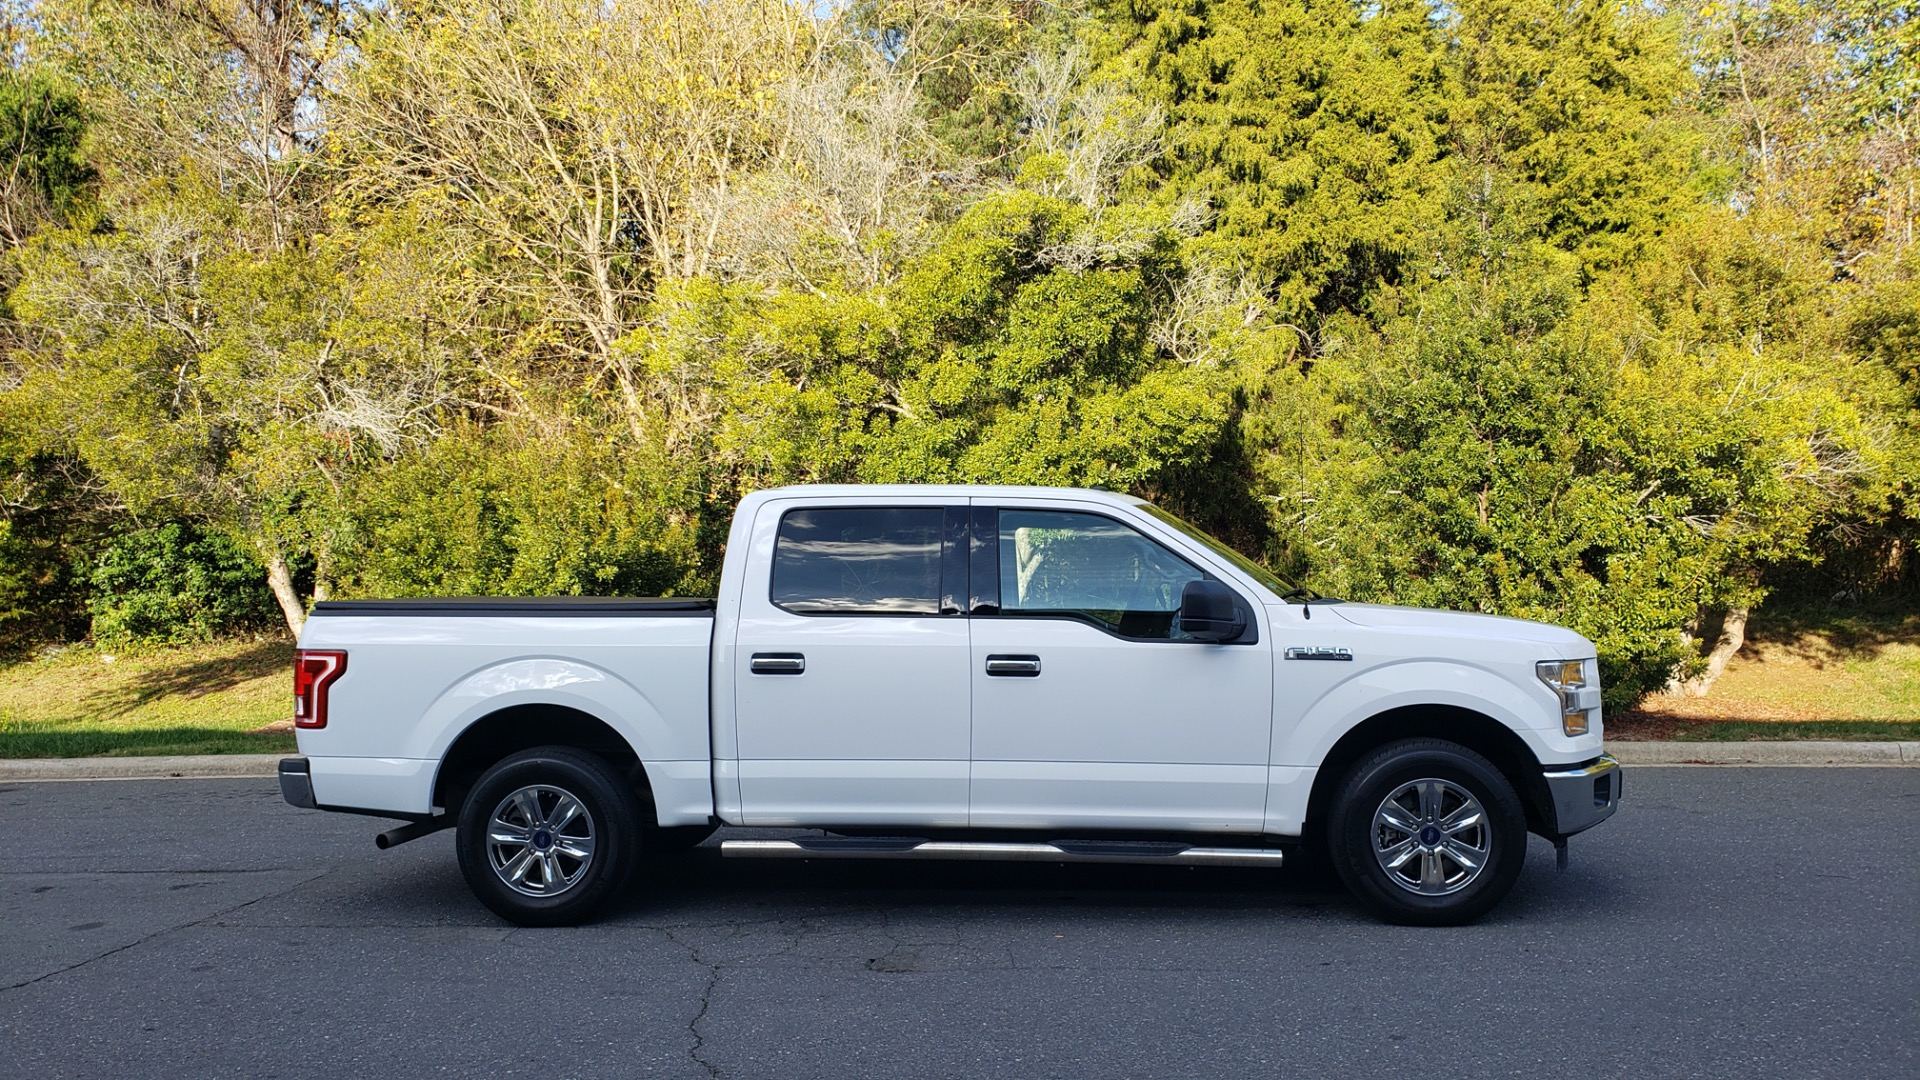 Used 2017 Ford F-150 XLT 4x2 SUPERCREW / V6 / AUTO / 145 WB / 5.6 BED for sale Sold at Formula Imports in Charlotte NC 28227 12